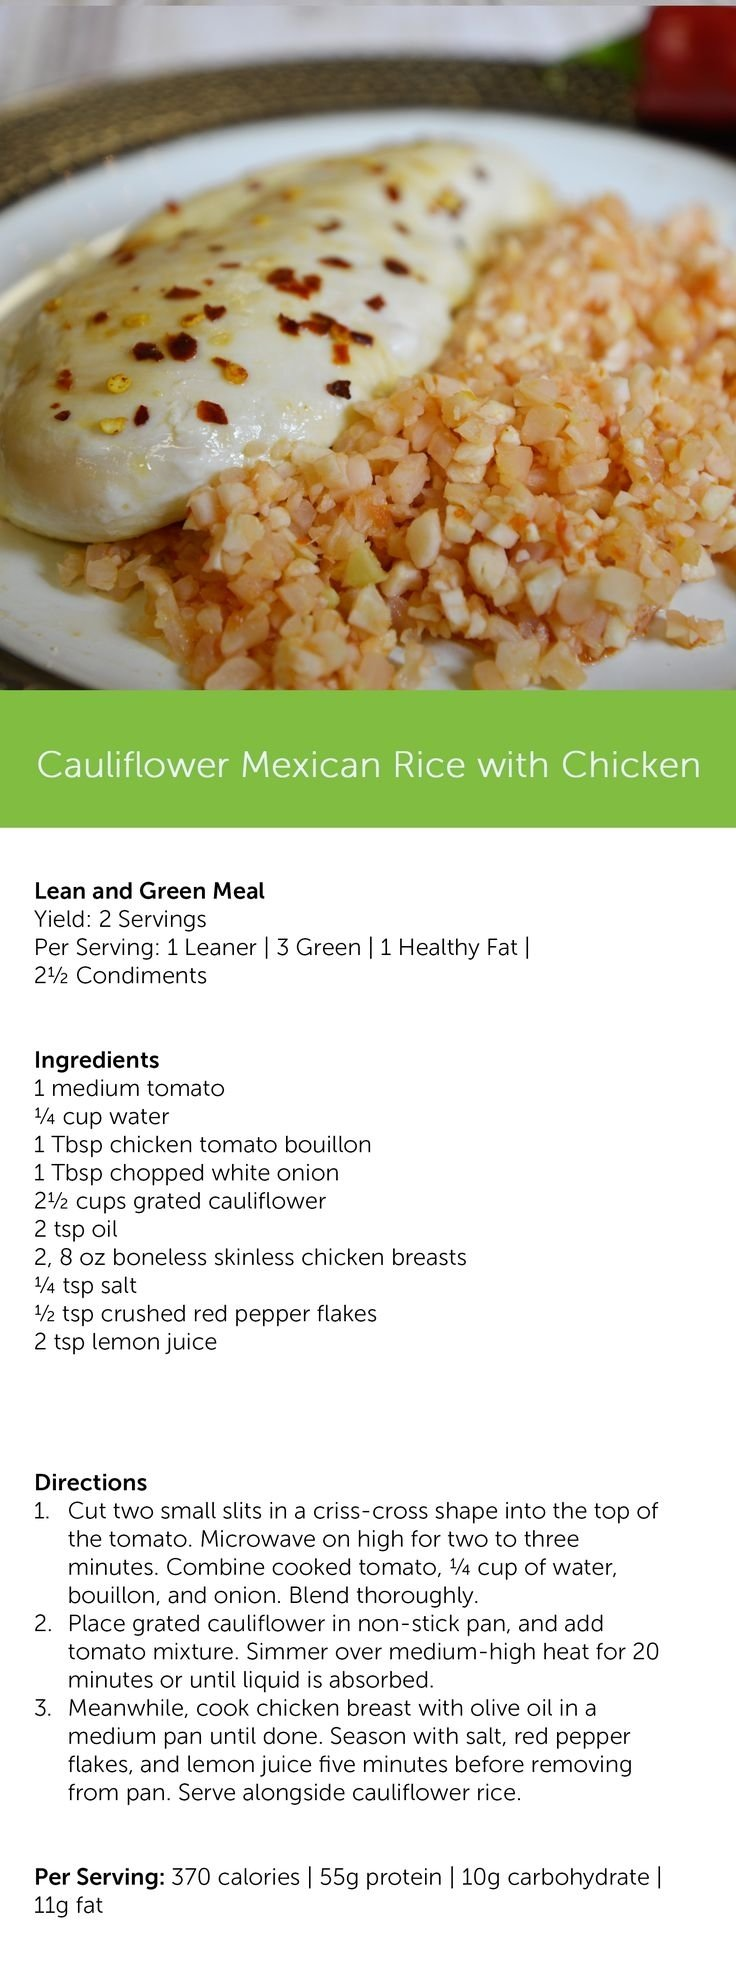 10 Trendy Medifast Lean And Green Meal Ideas 81 best live right images on pinterest 2021